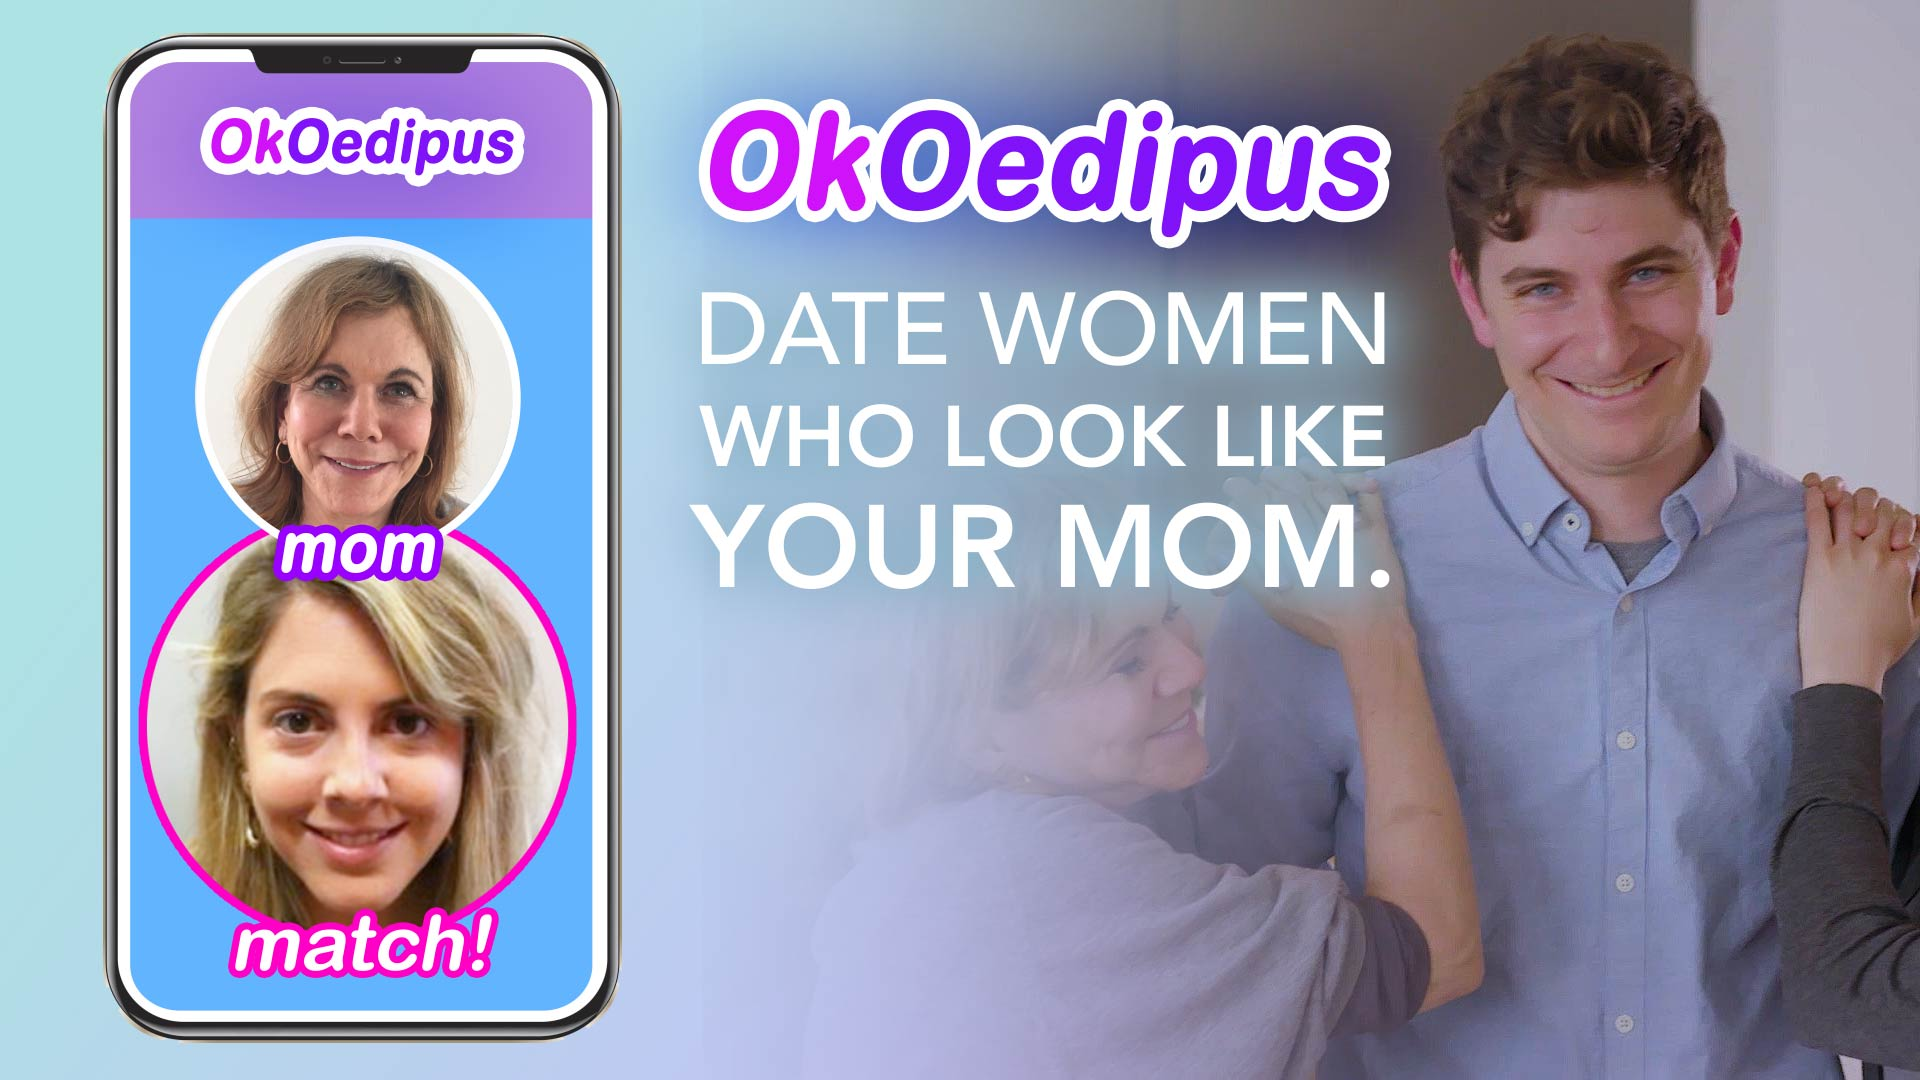 If you're horny and love your mom, we've got the app for you. https://t.co/oo7KIoVHLX